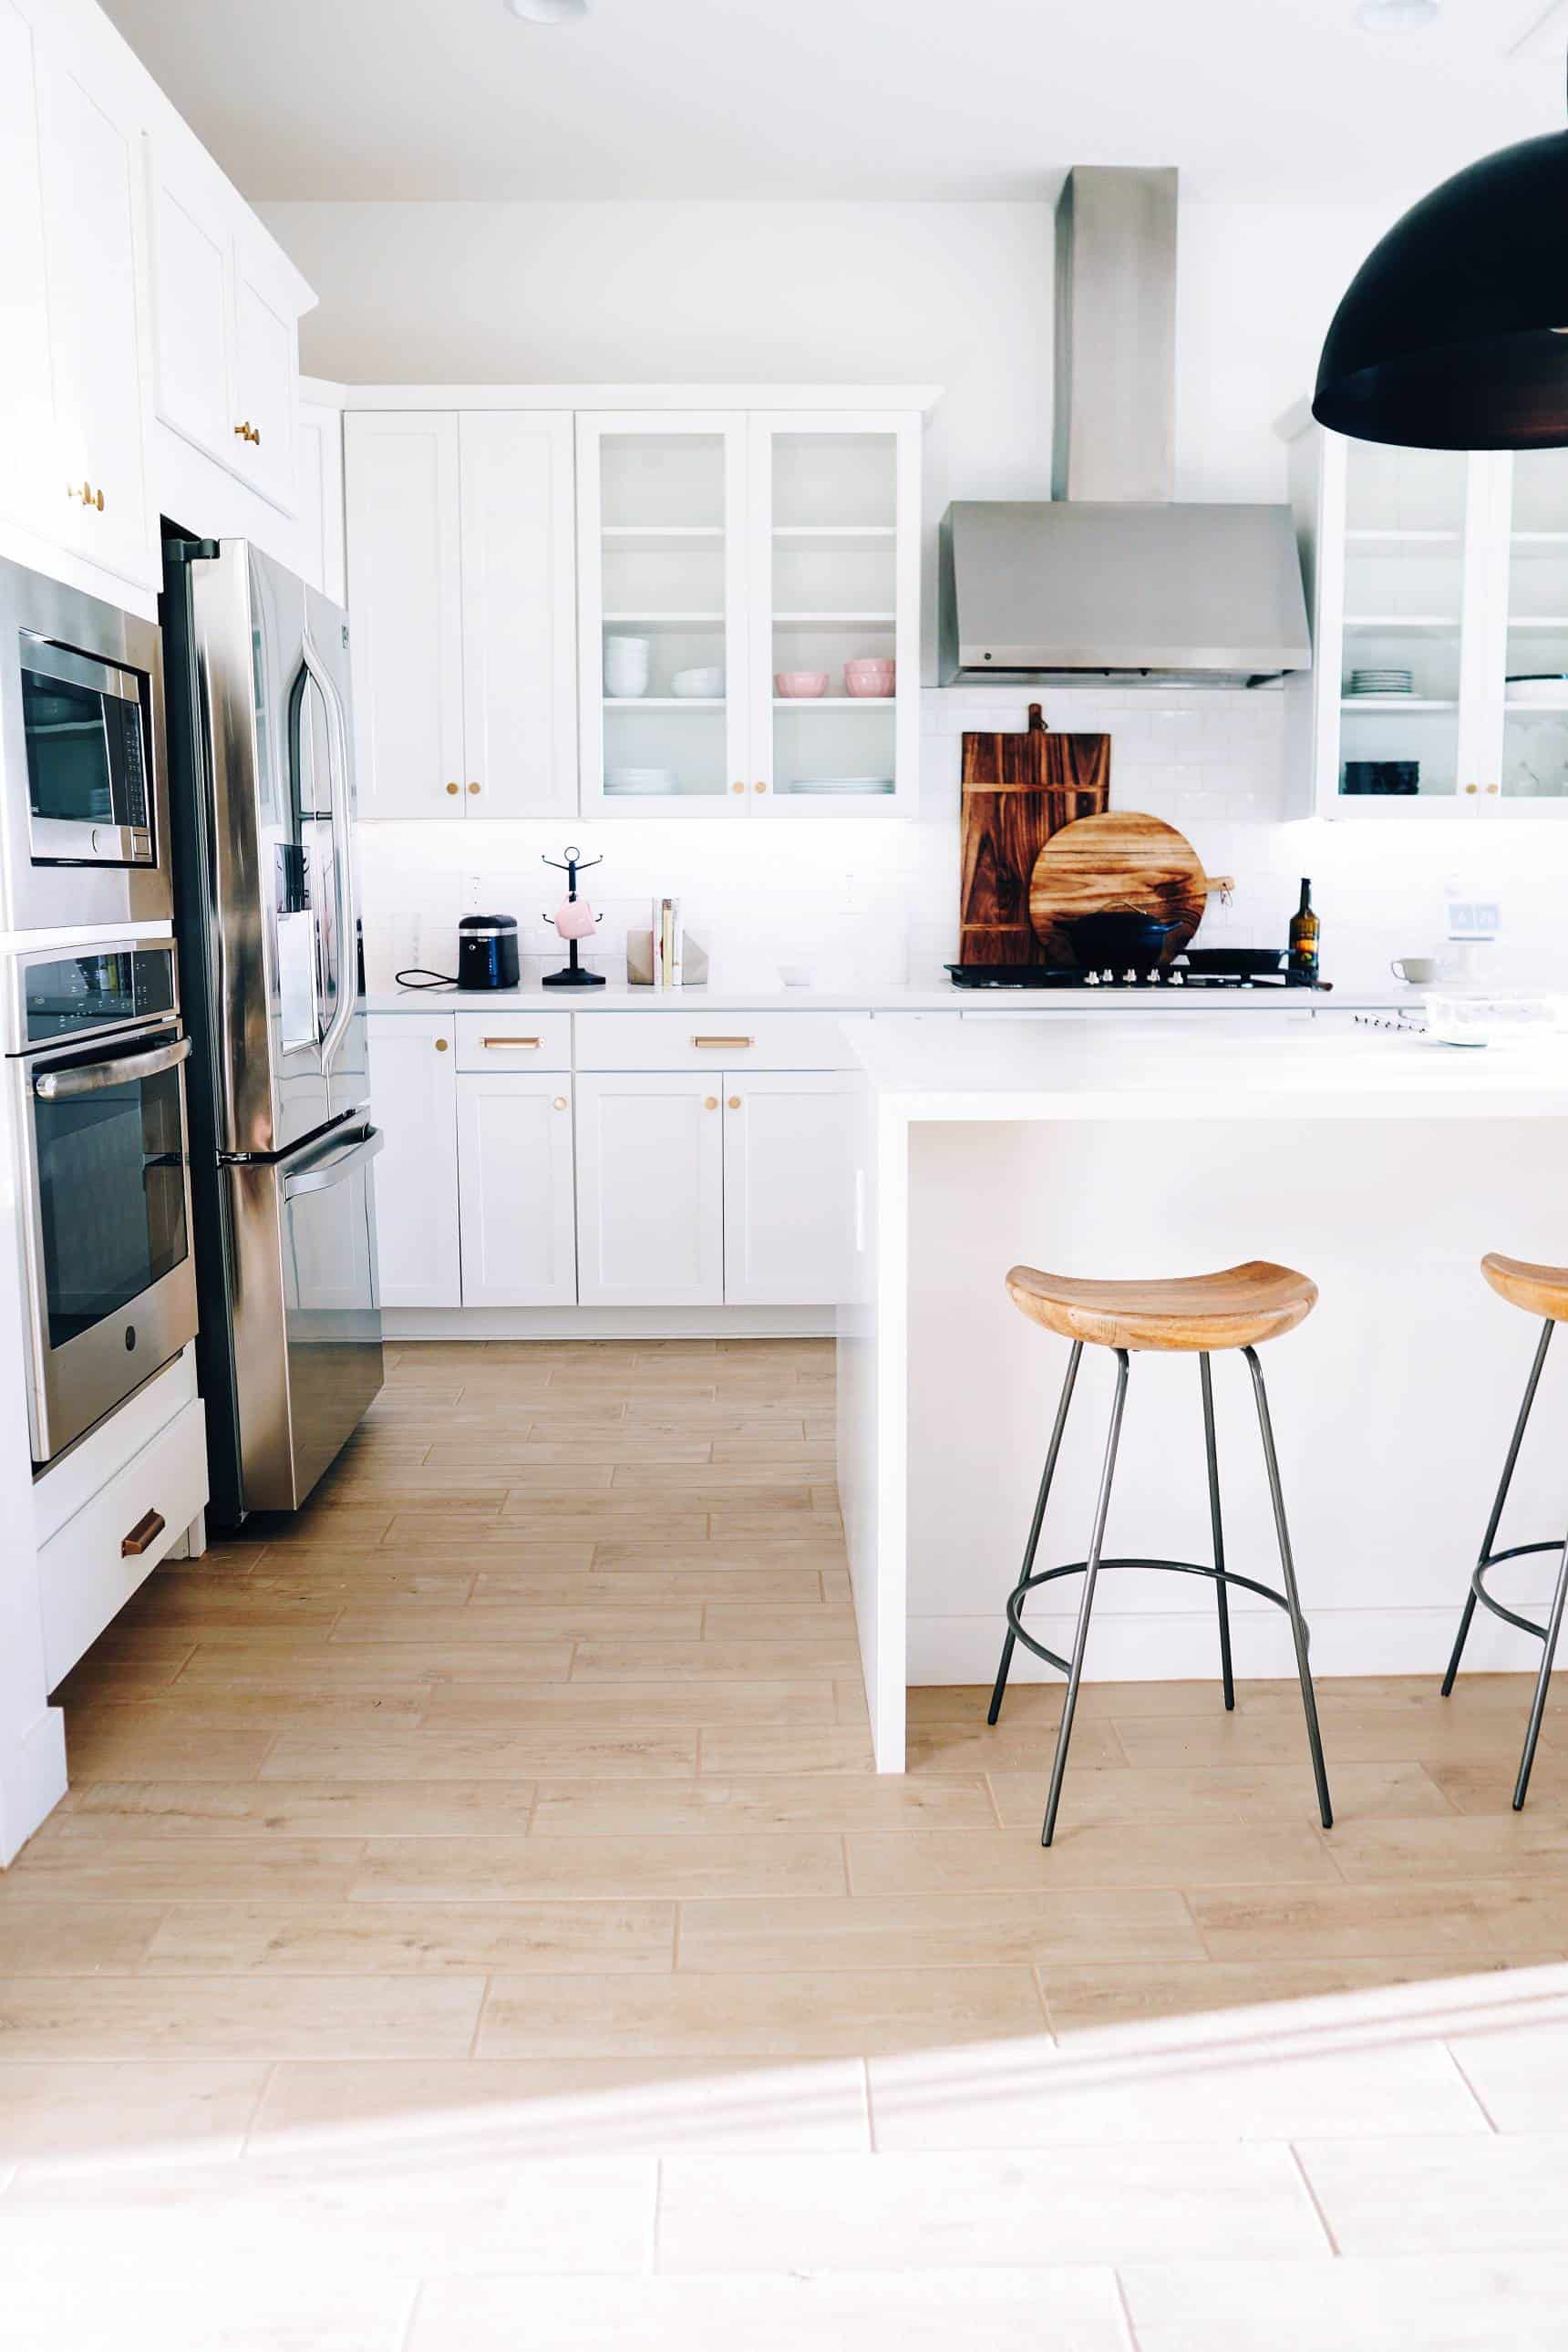 Refresh your kitchen on a budget by installing new flooring